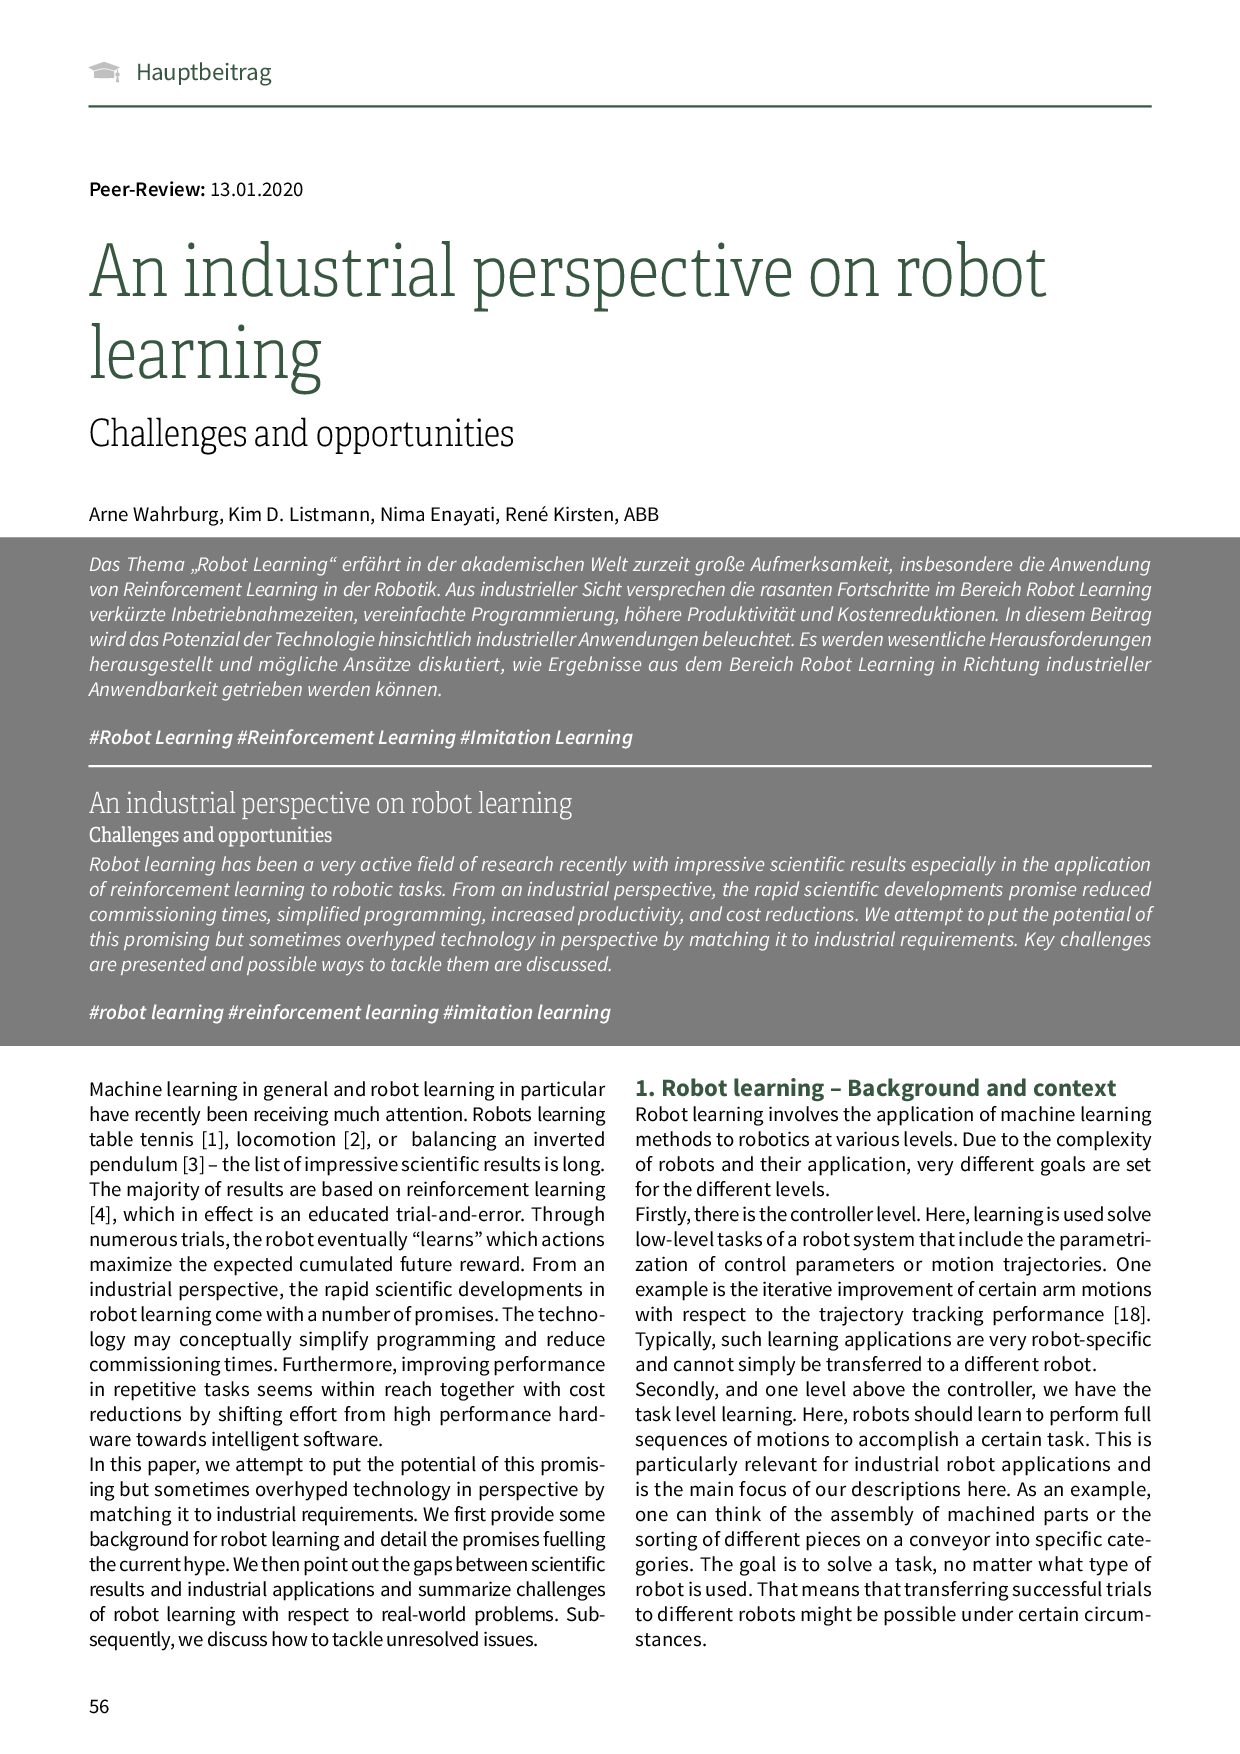 An industrial perspective on robot learning